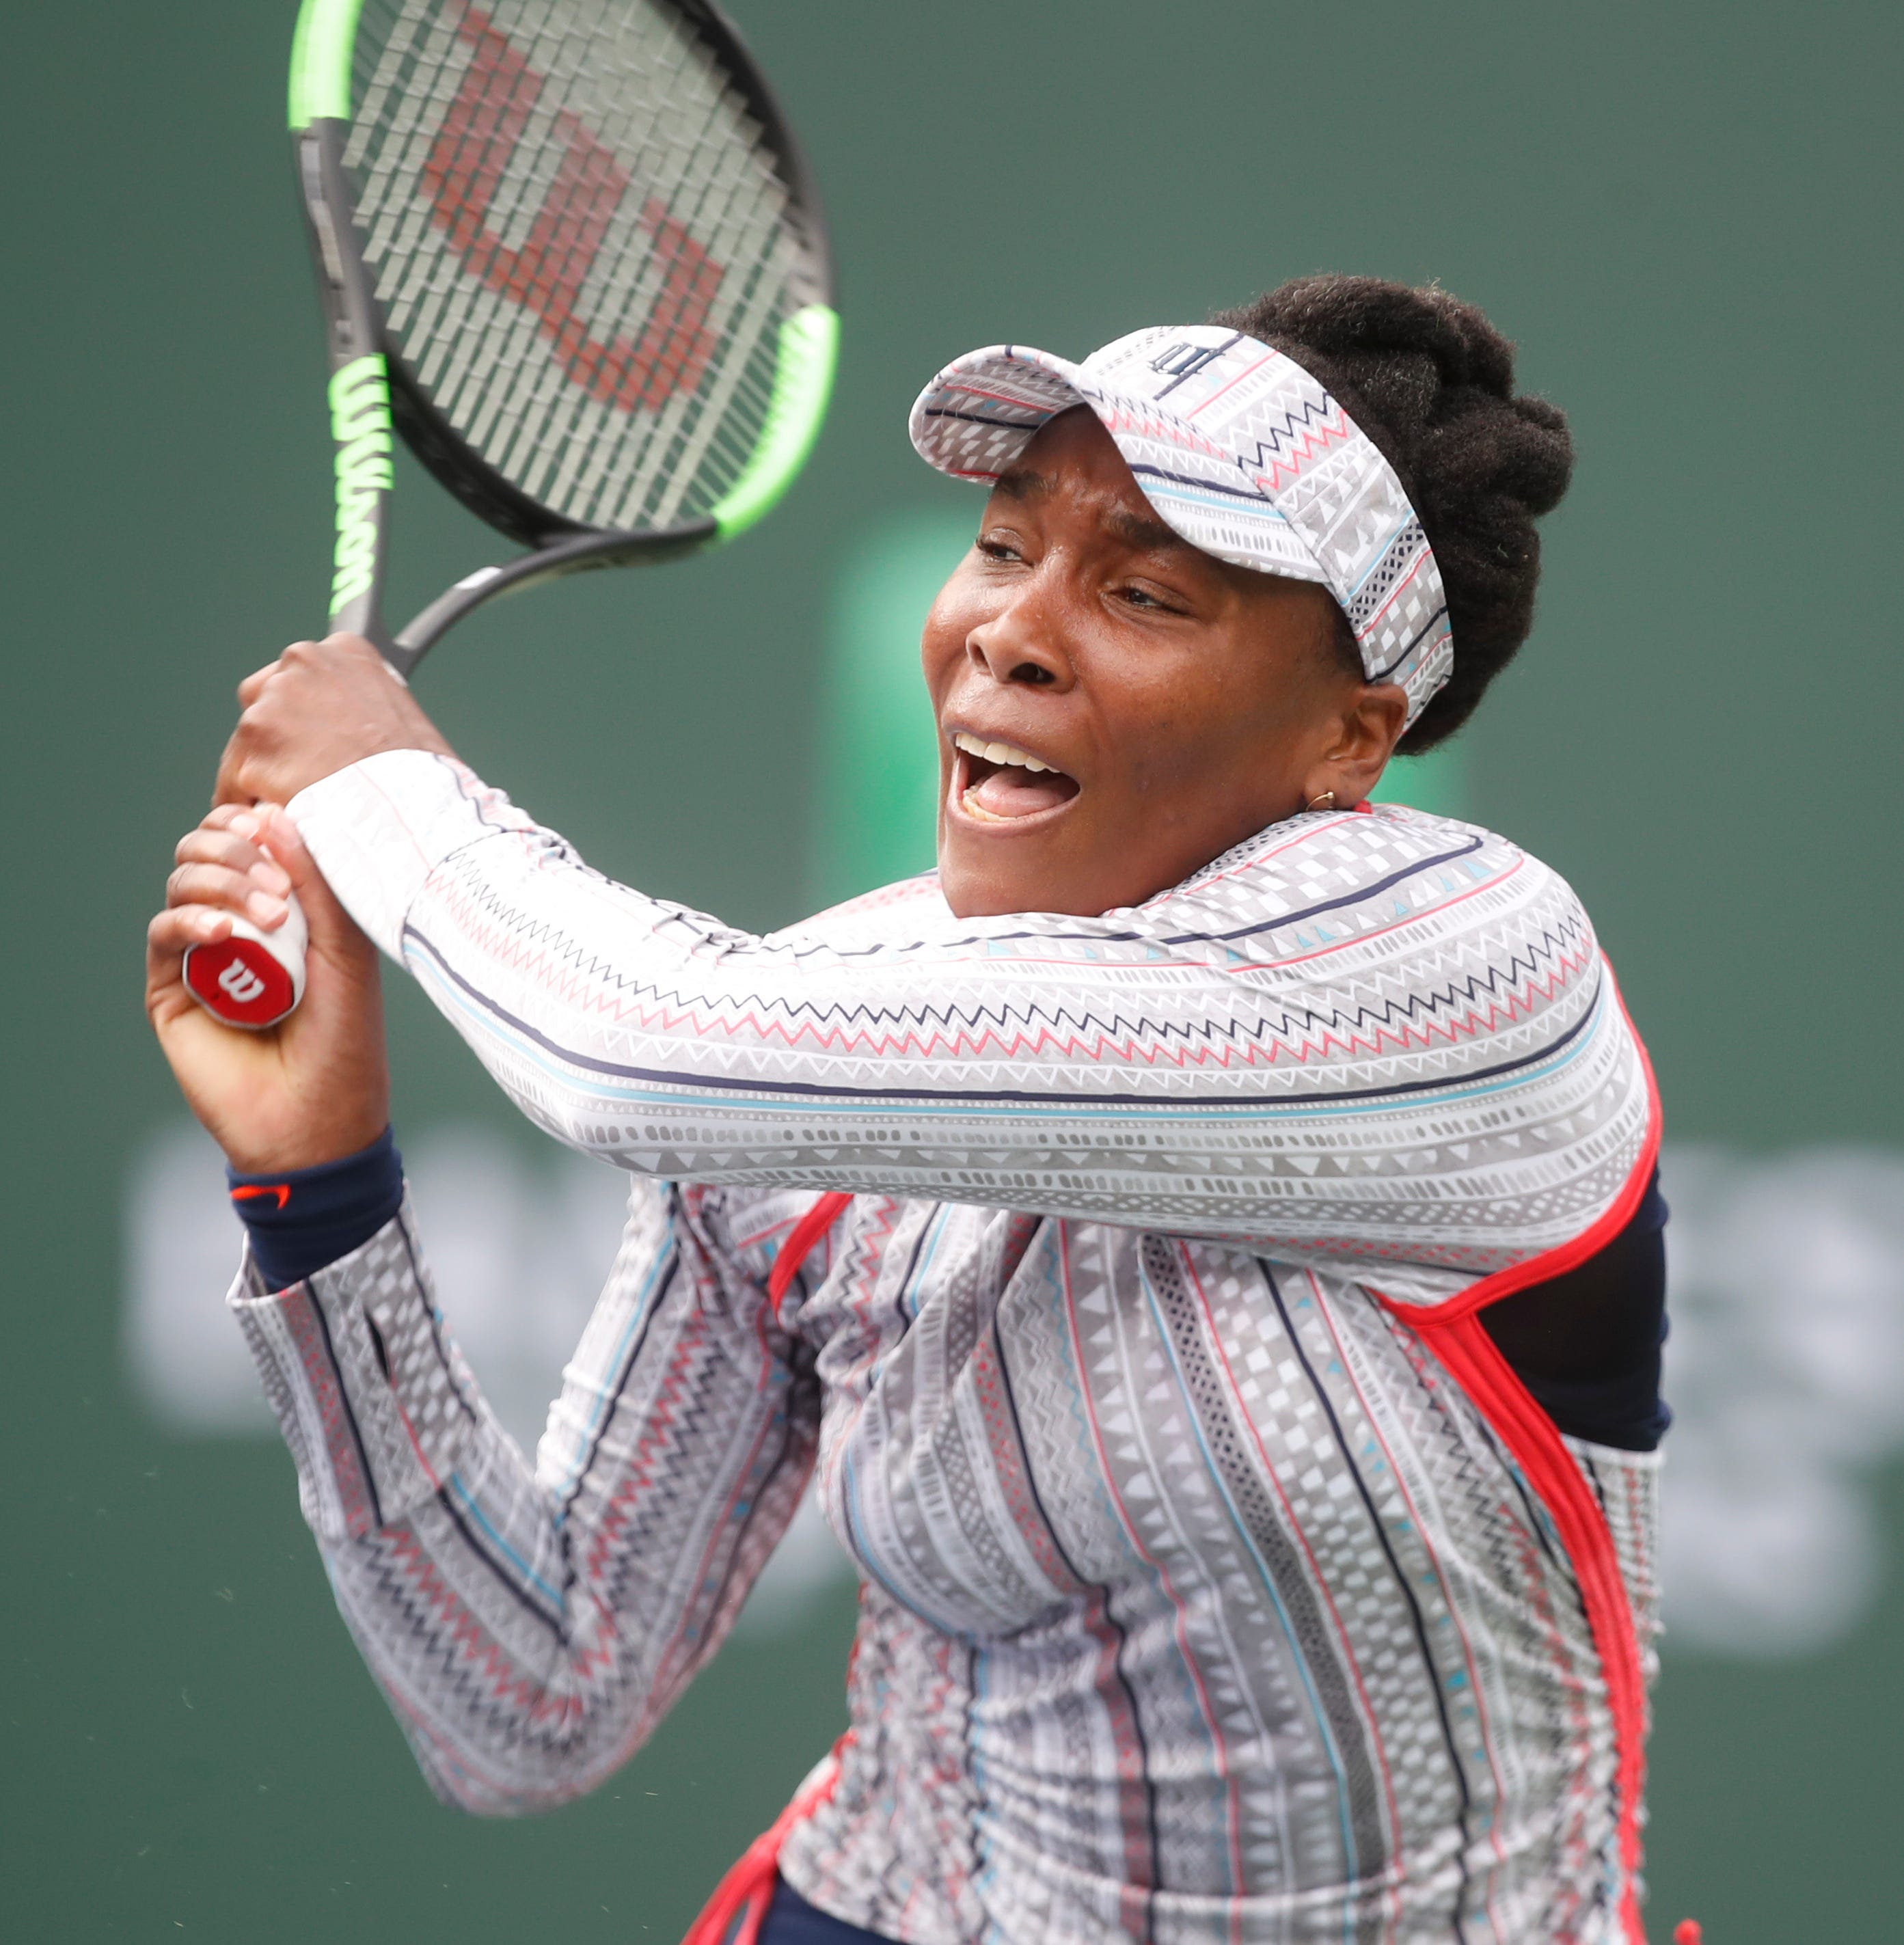 After tough matches, Venus Williams finds a respite in third-round BNP Paribas Open win